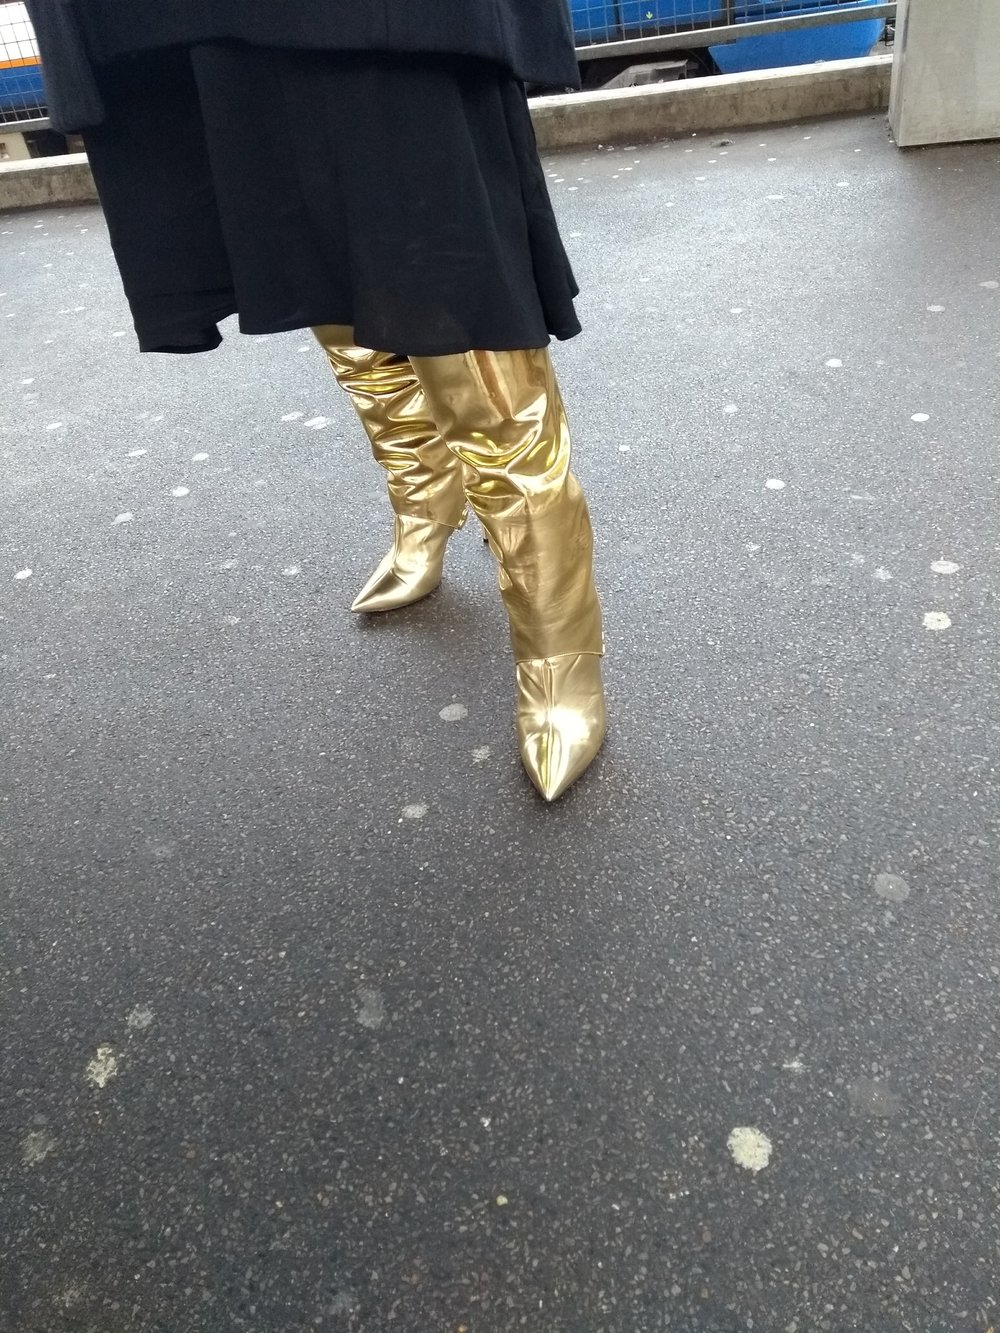 Epic distracting Golden boots of Wonder!